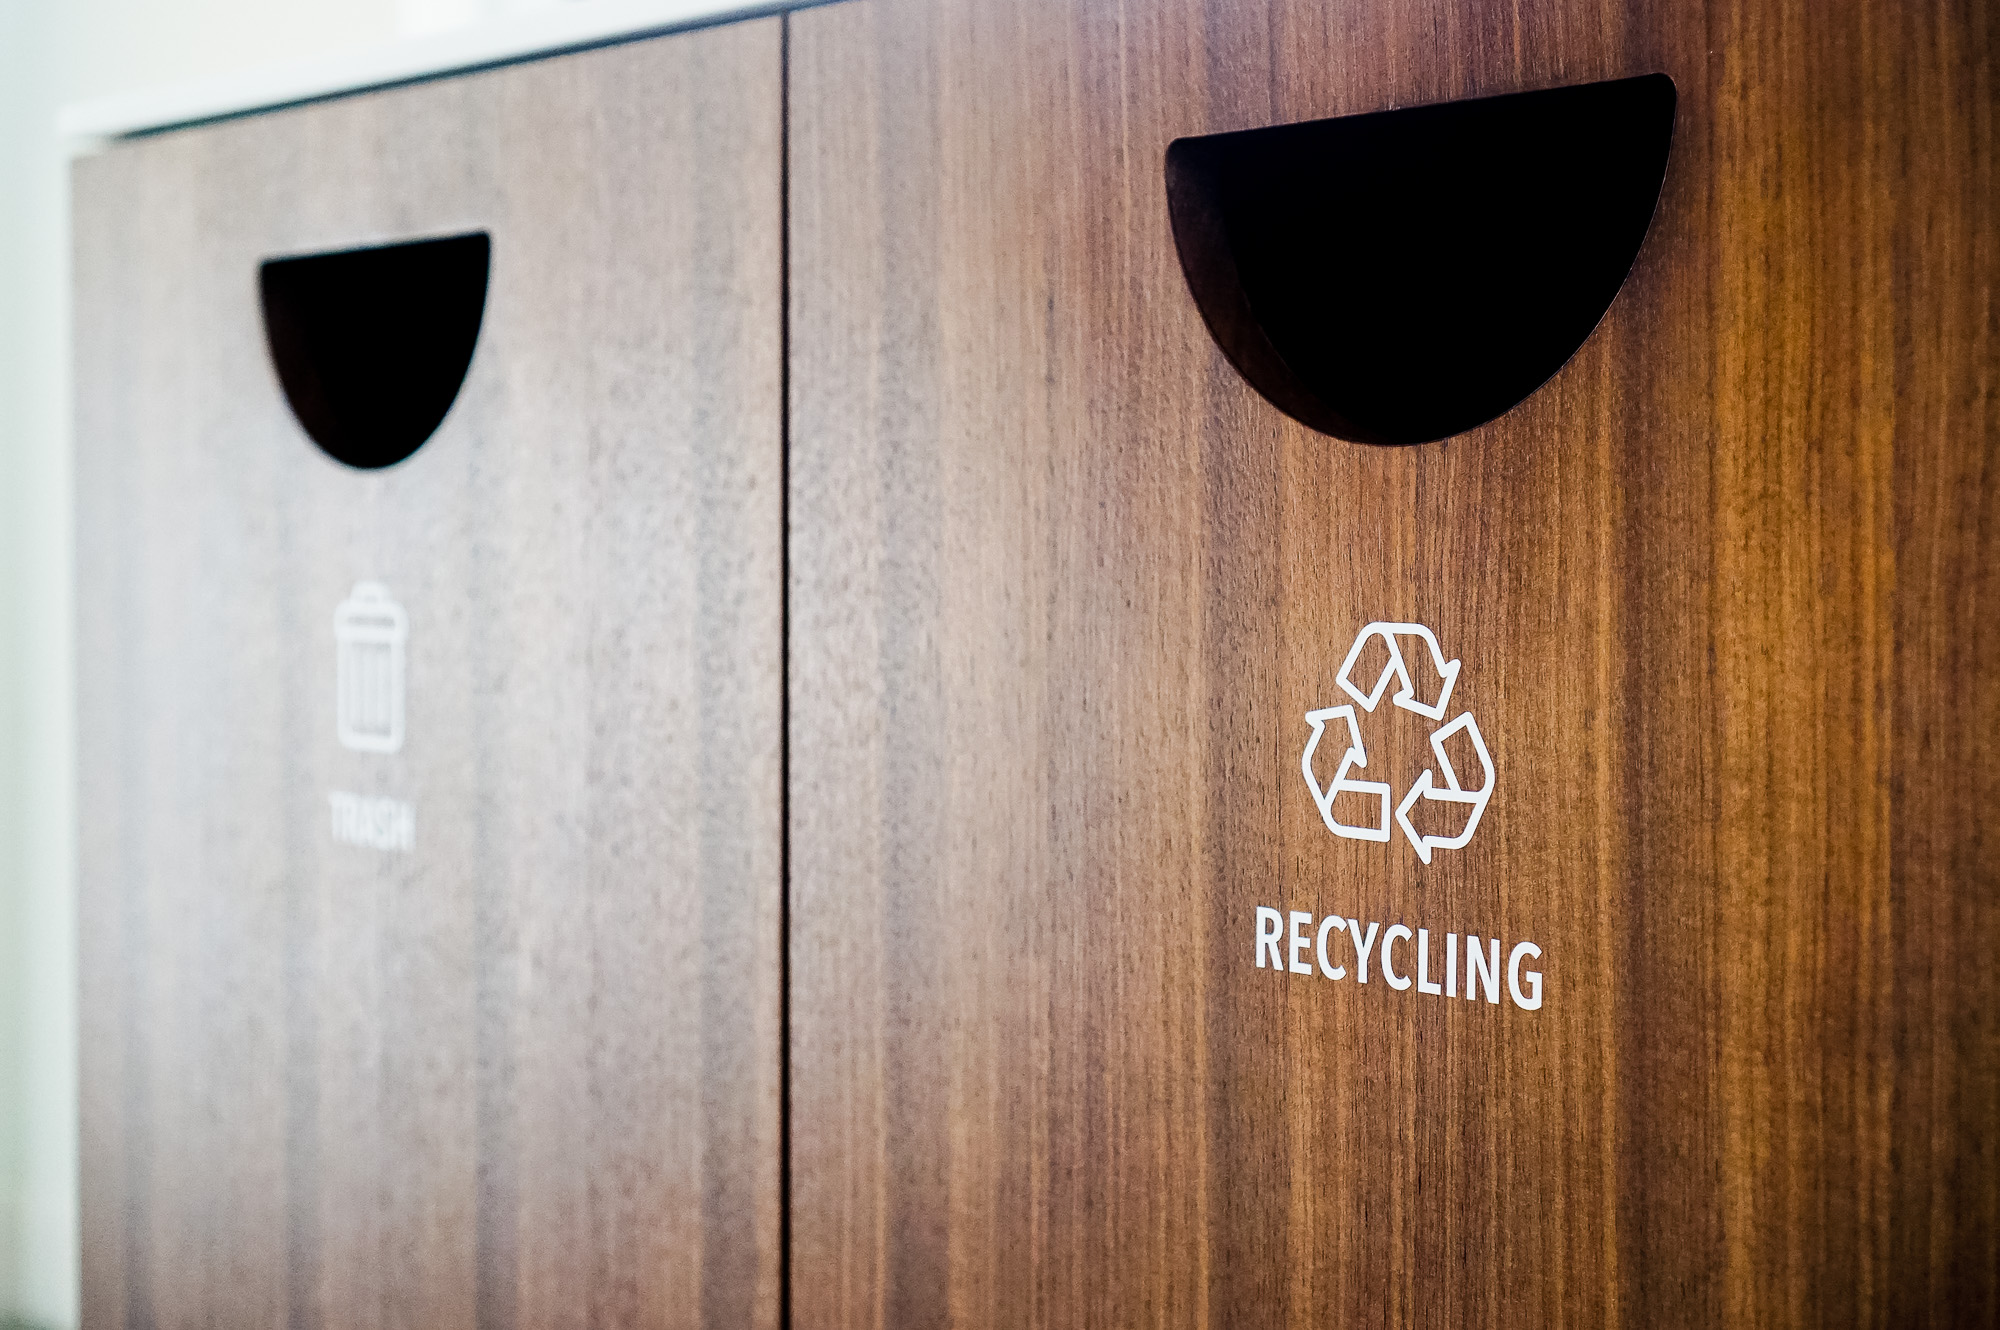 Minimal white vinyl signage /decals for wood trash, compost, and recycling bins at the office of Baker McKenzie, a multinational law firm.